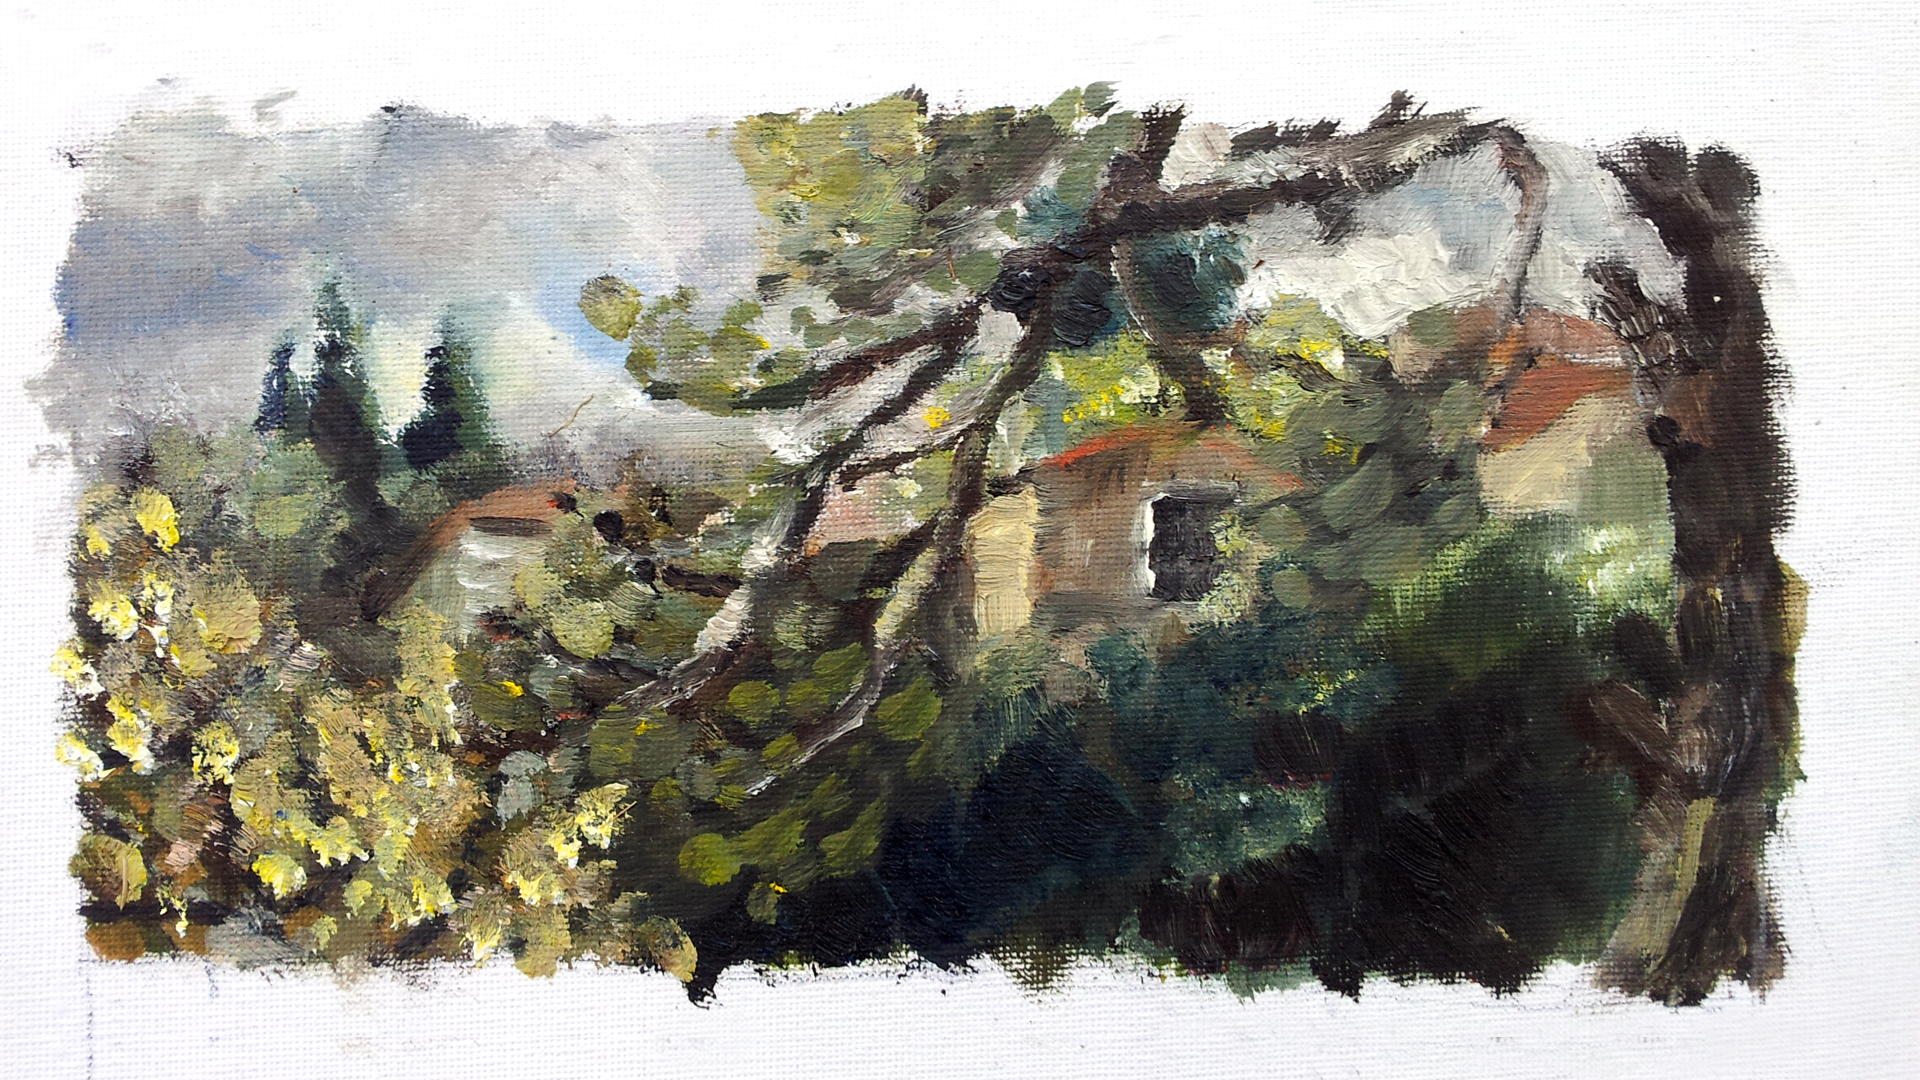 Bakaa, Jerusalem. Oil on canvas. 2014